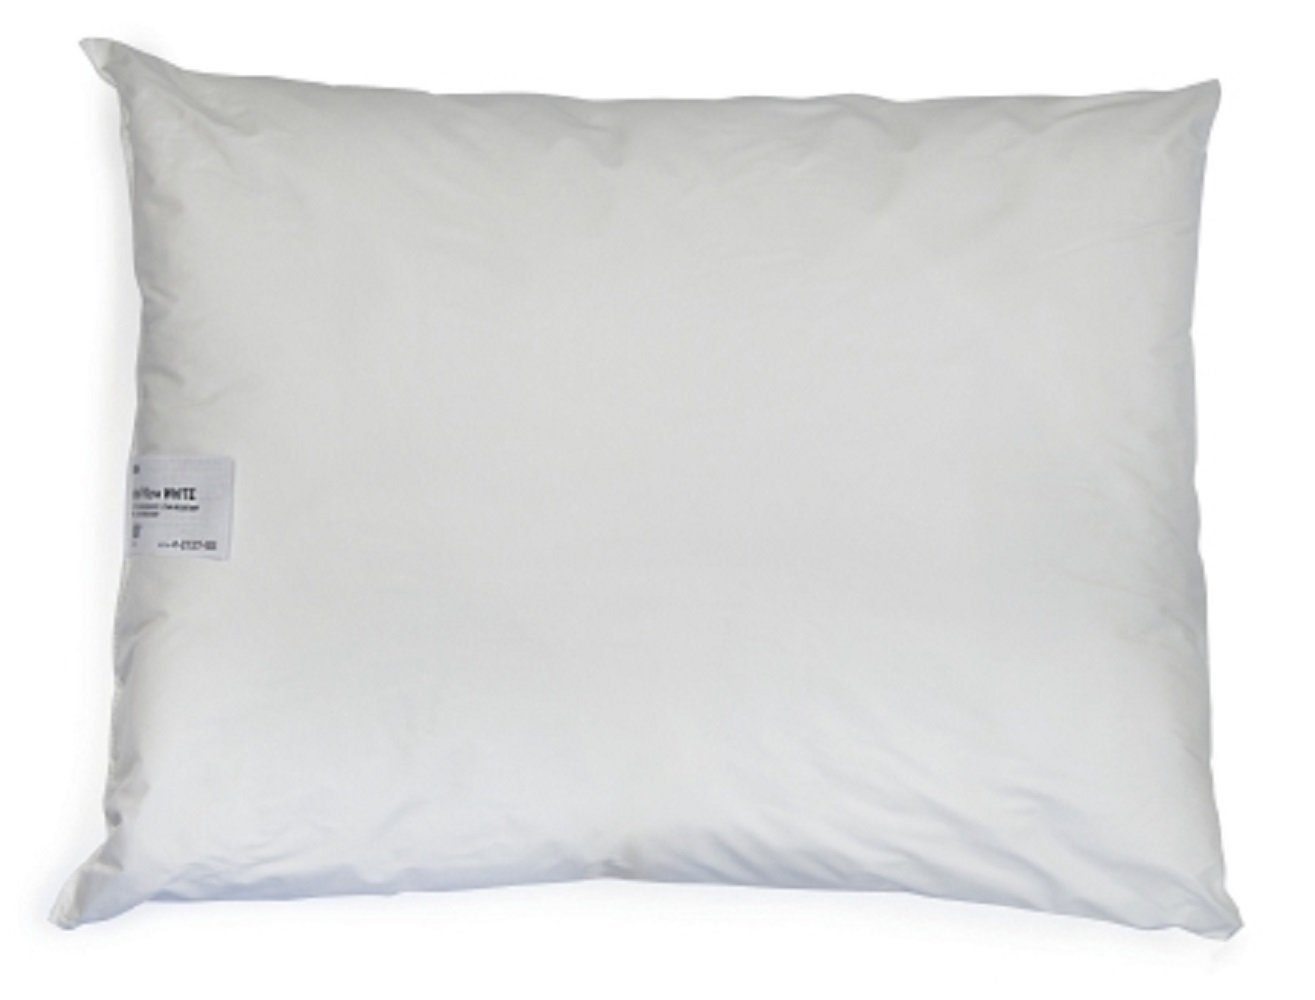 McKesson - Bed Pillow - 21 X 27 Inch - White - Reusable - 12/Case - McK